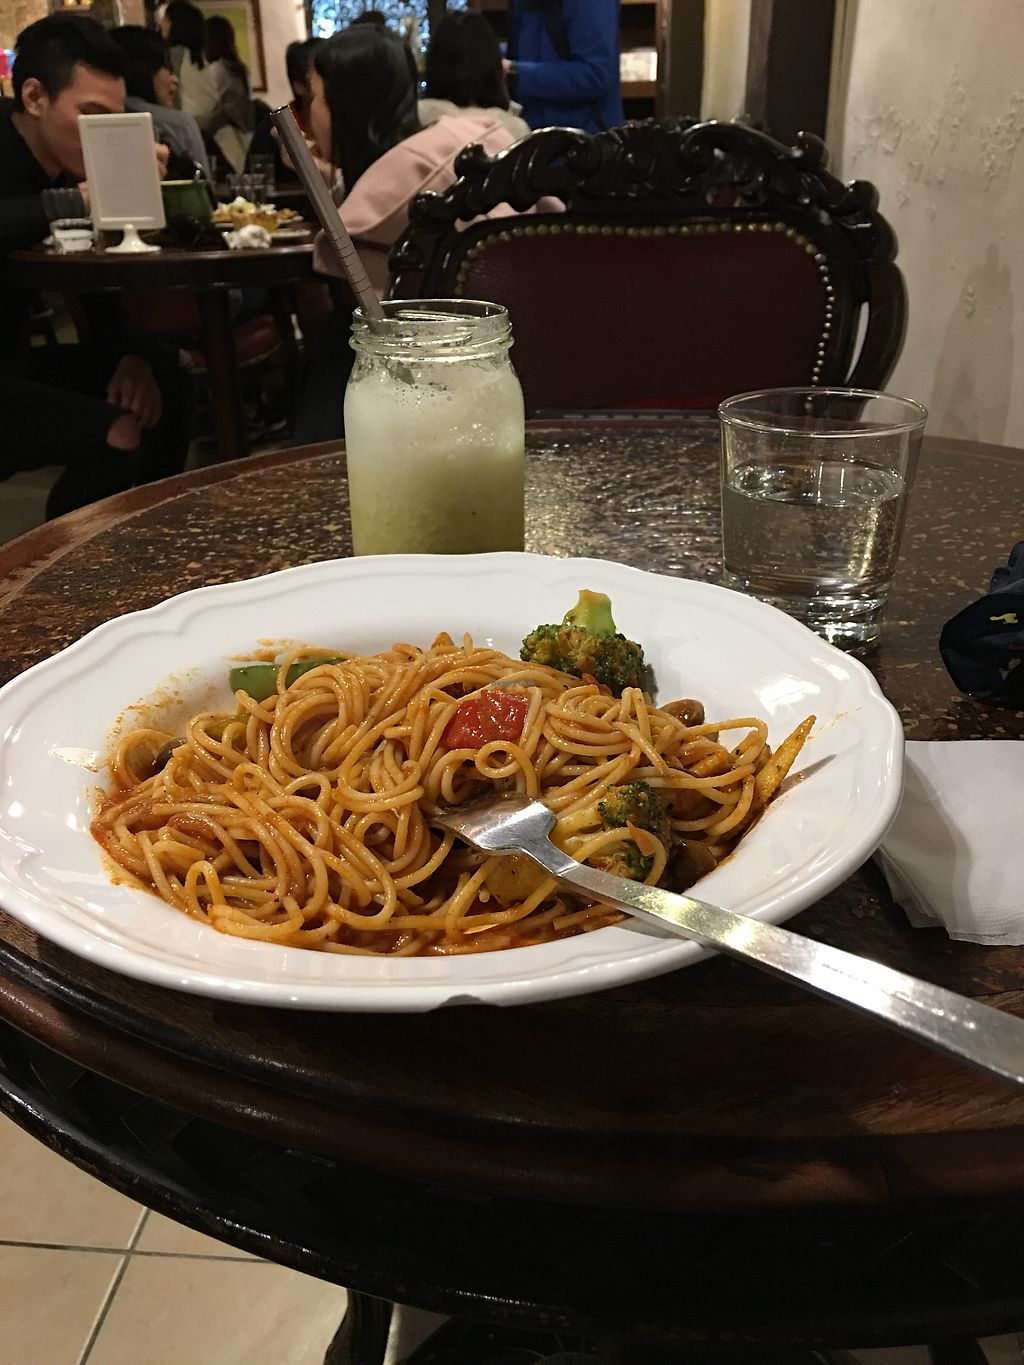 "Photo of Bluesomeone's Vegan Cafe  by <a href=""/members/profile/sweetsubway"">sweetsubway</a> <br/>Tomato pasta and fruit juice :)  <br/> January 6, 2018  - <a href='/contact/abuse/image/52242/343509'>Report</a>"